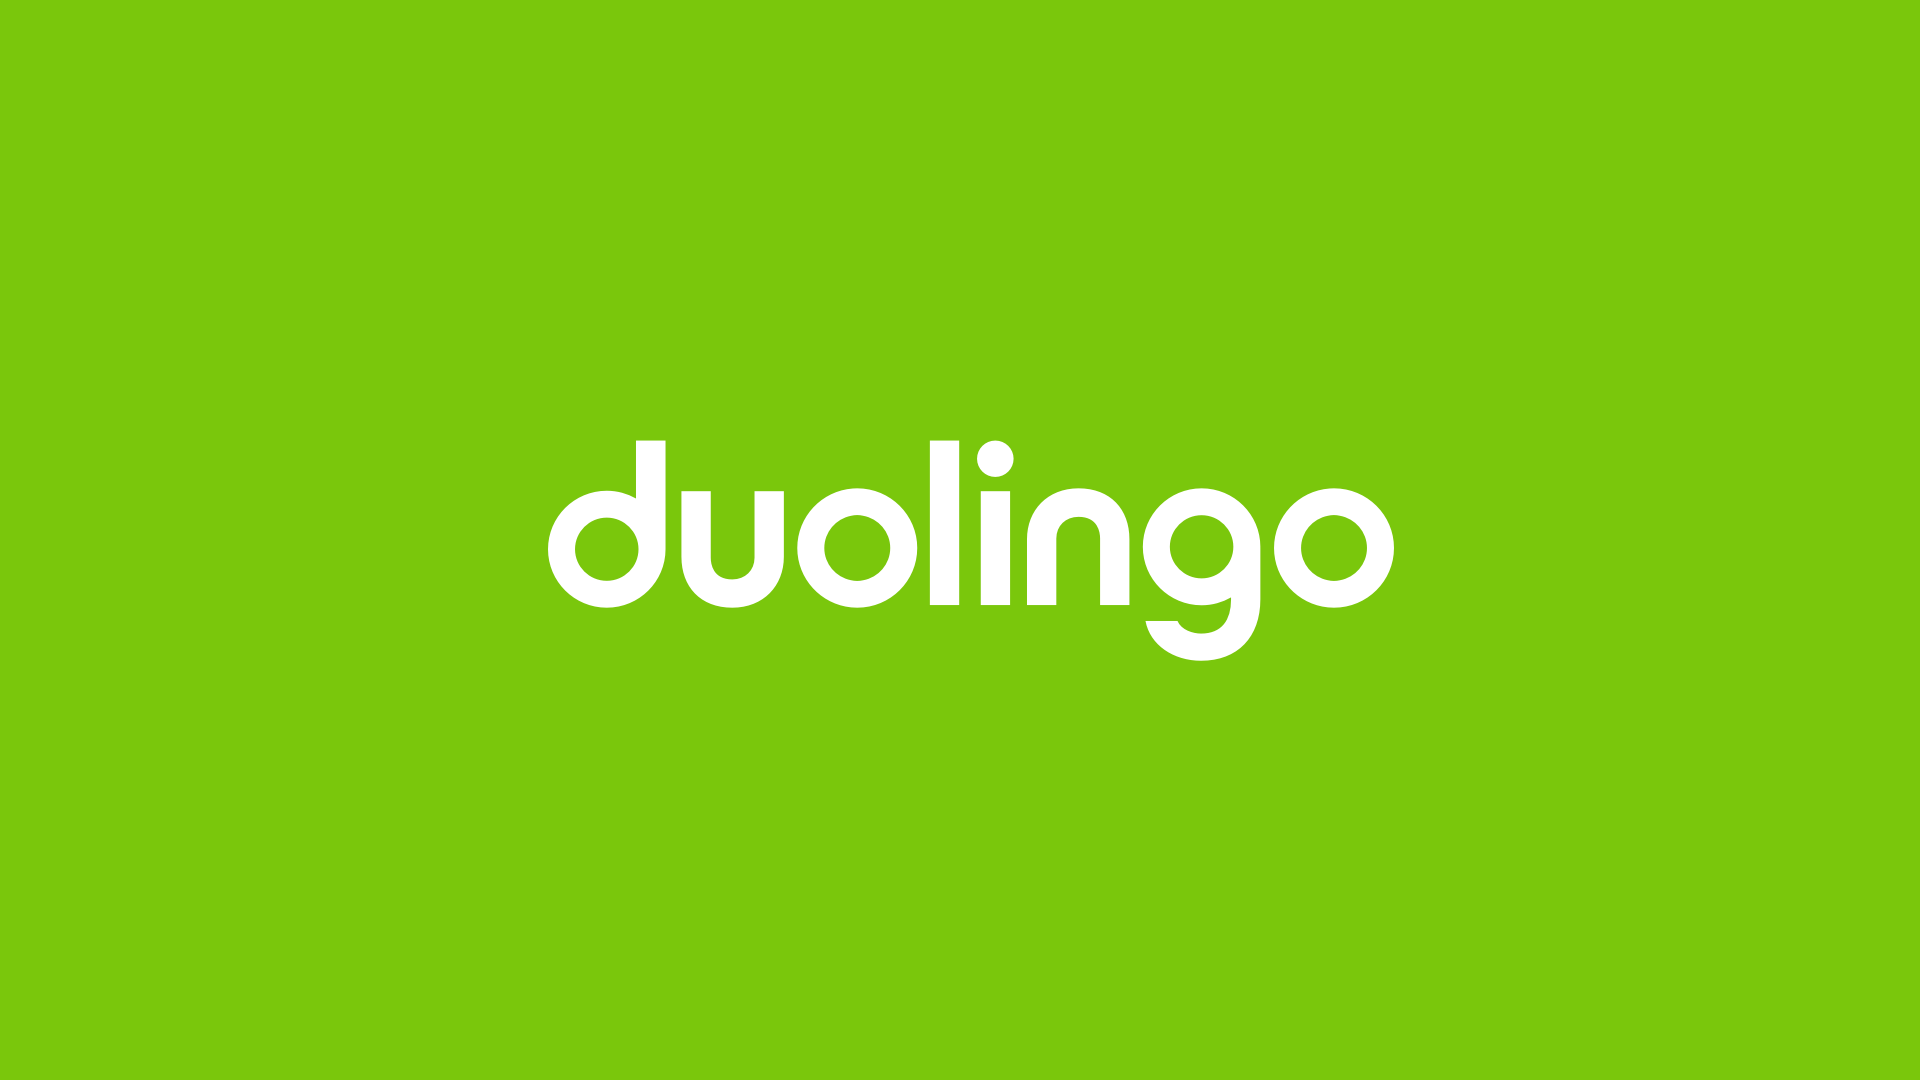 Duolingo Logo by Jack Morgan